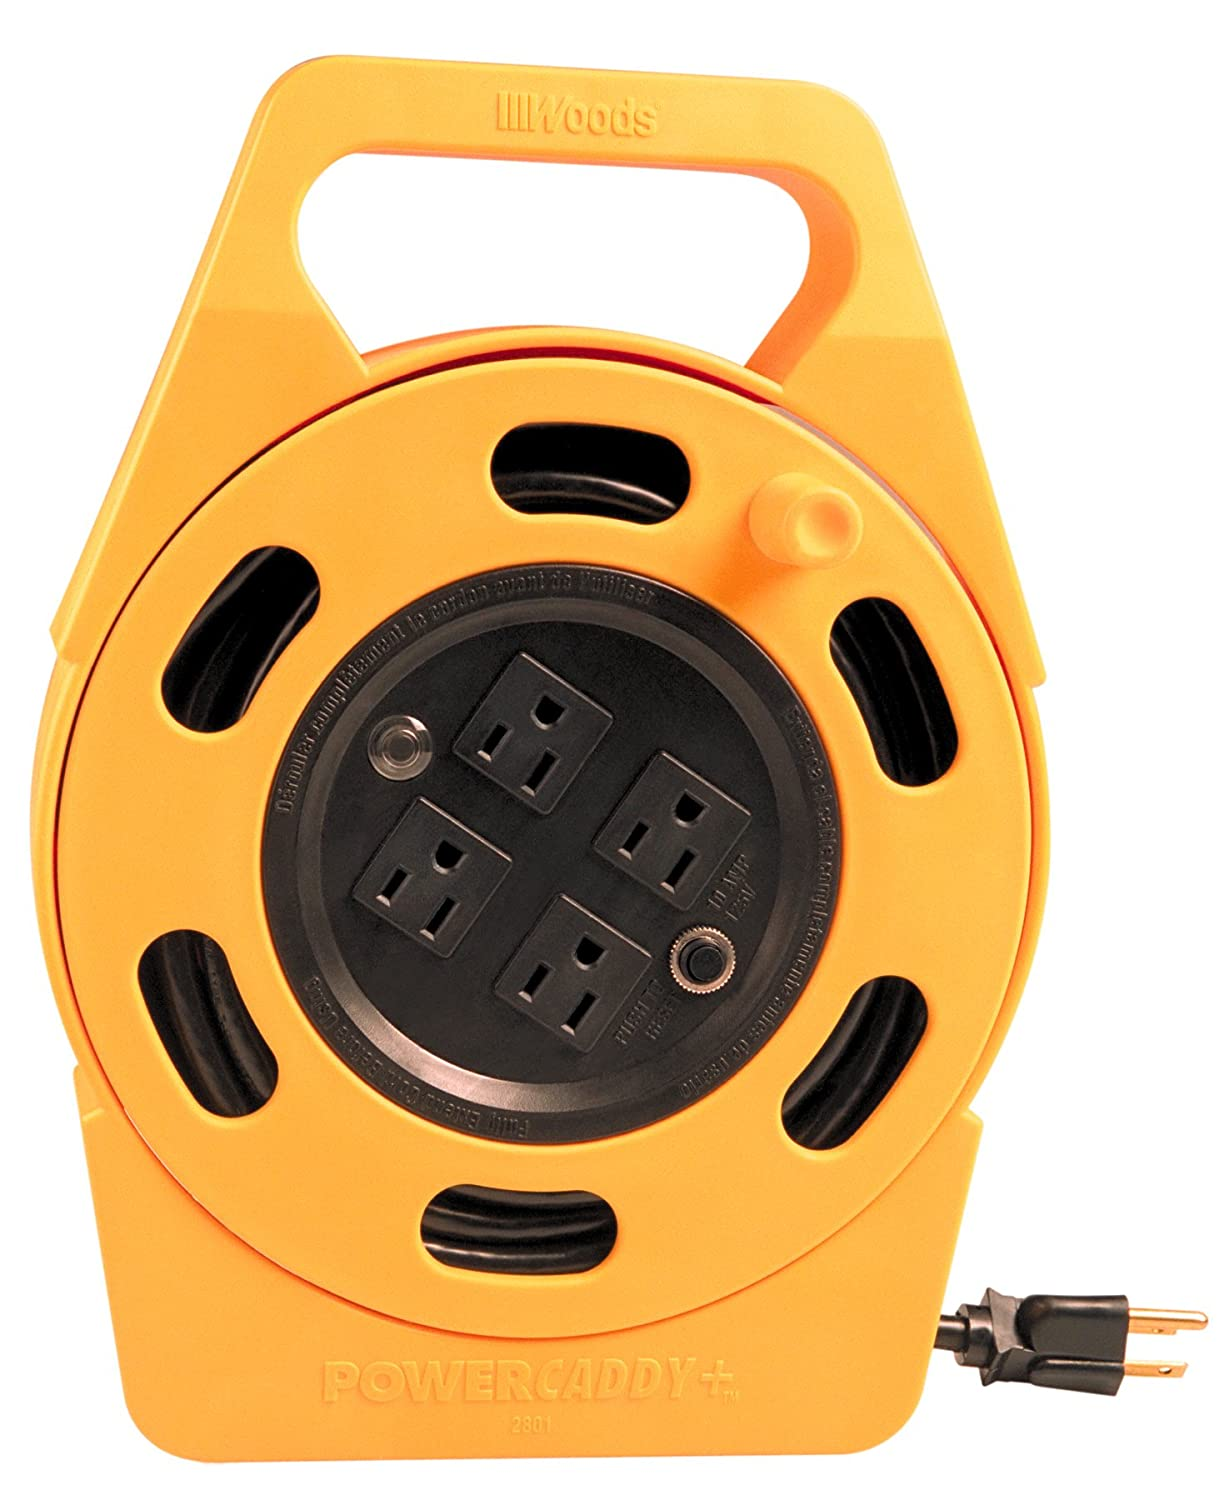 Woods 2801 Extension Cord Reel With Four 3-Prong Power Outlets (25 Foot, Yellow)